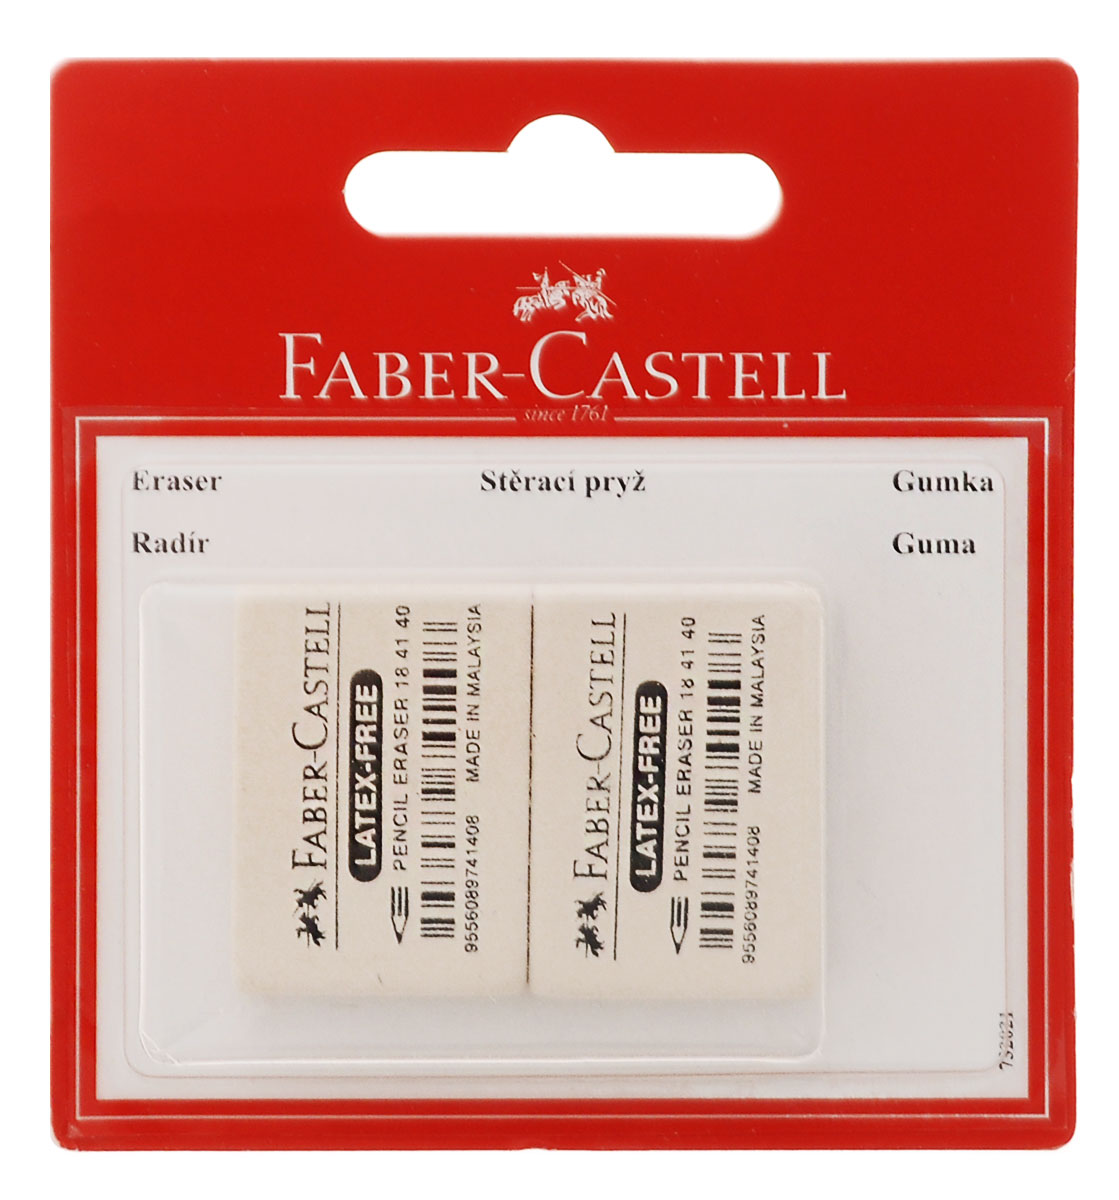 Faber-Castell Ластик 7040 2 шт